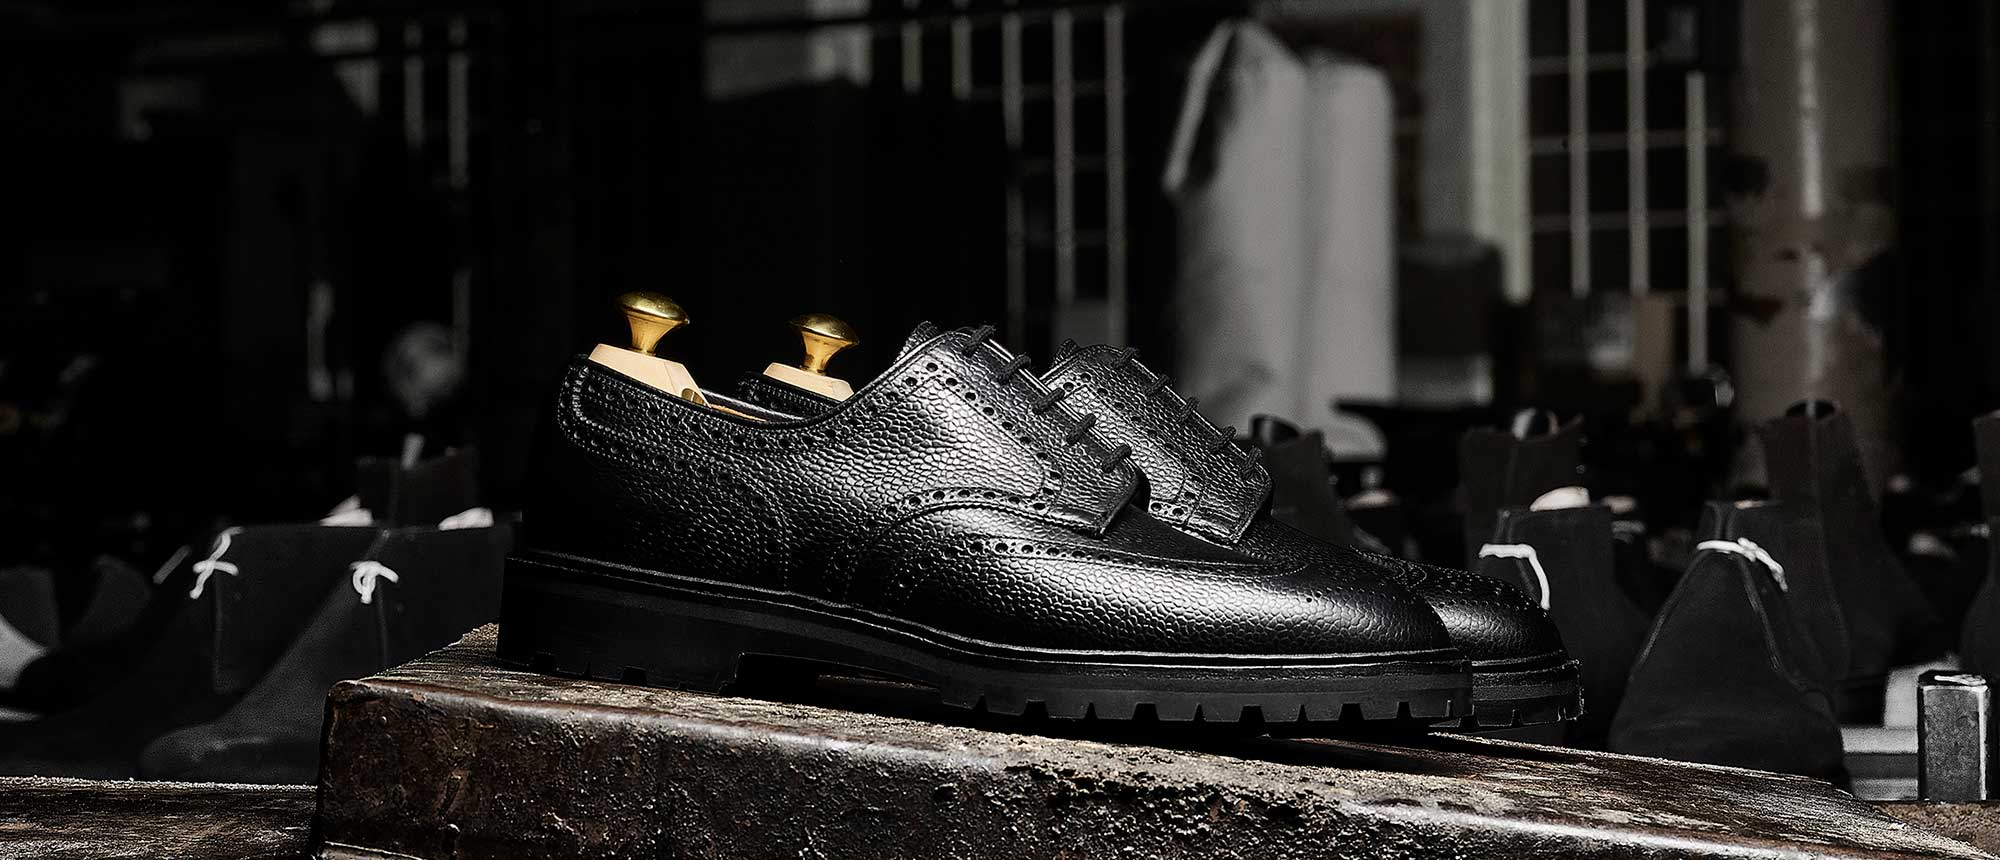 Crockett & Jones - The Black Editions 2 Details... Pembroke